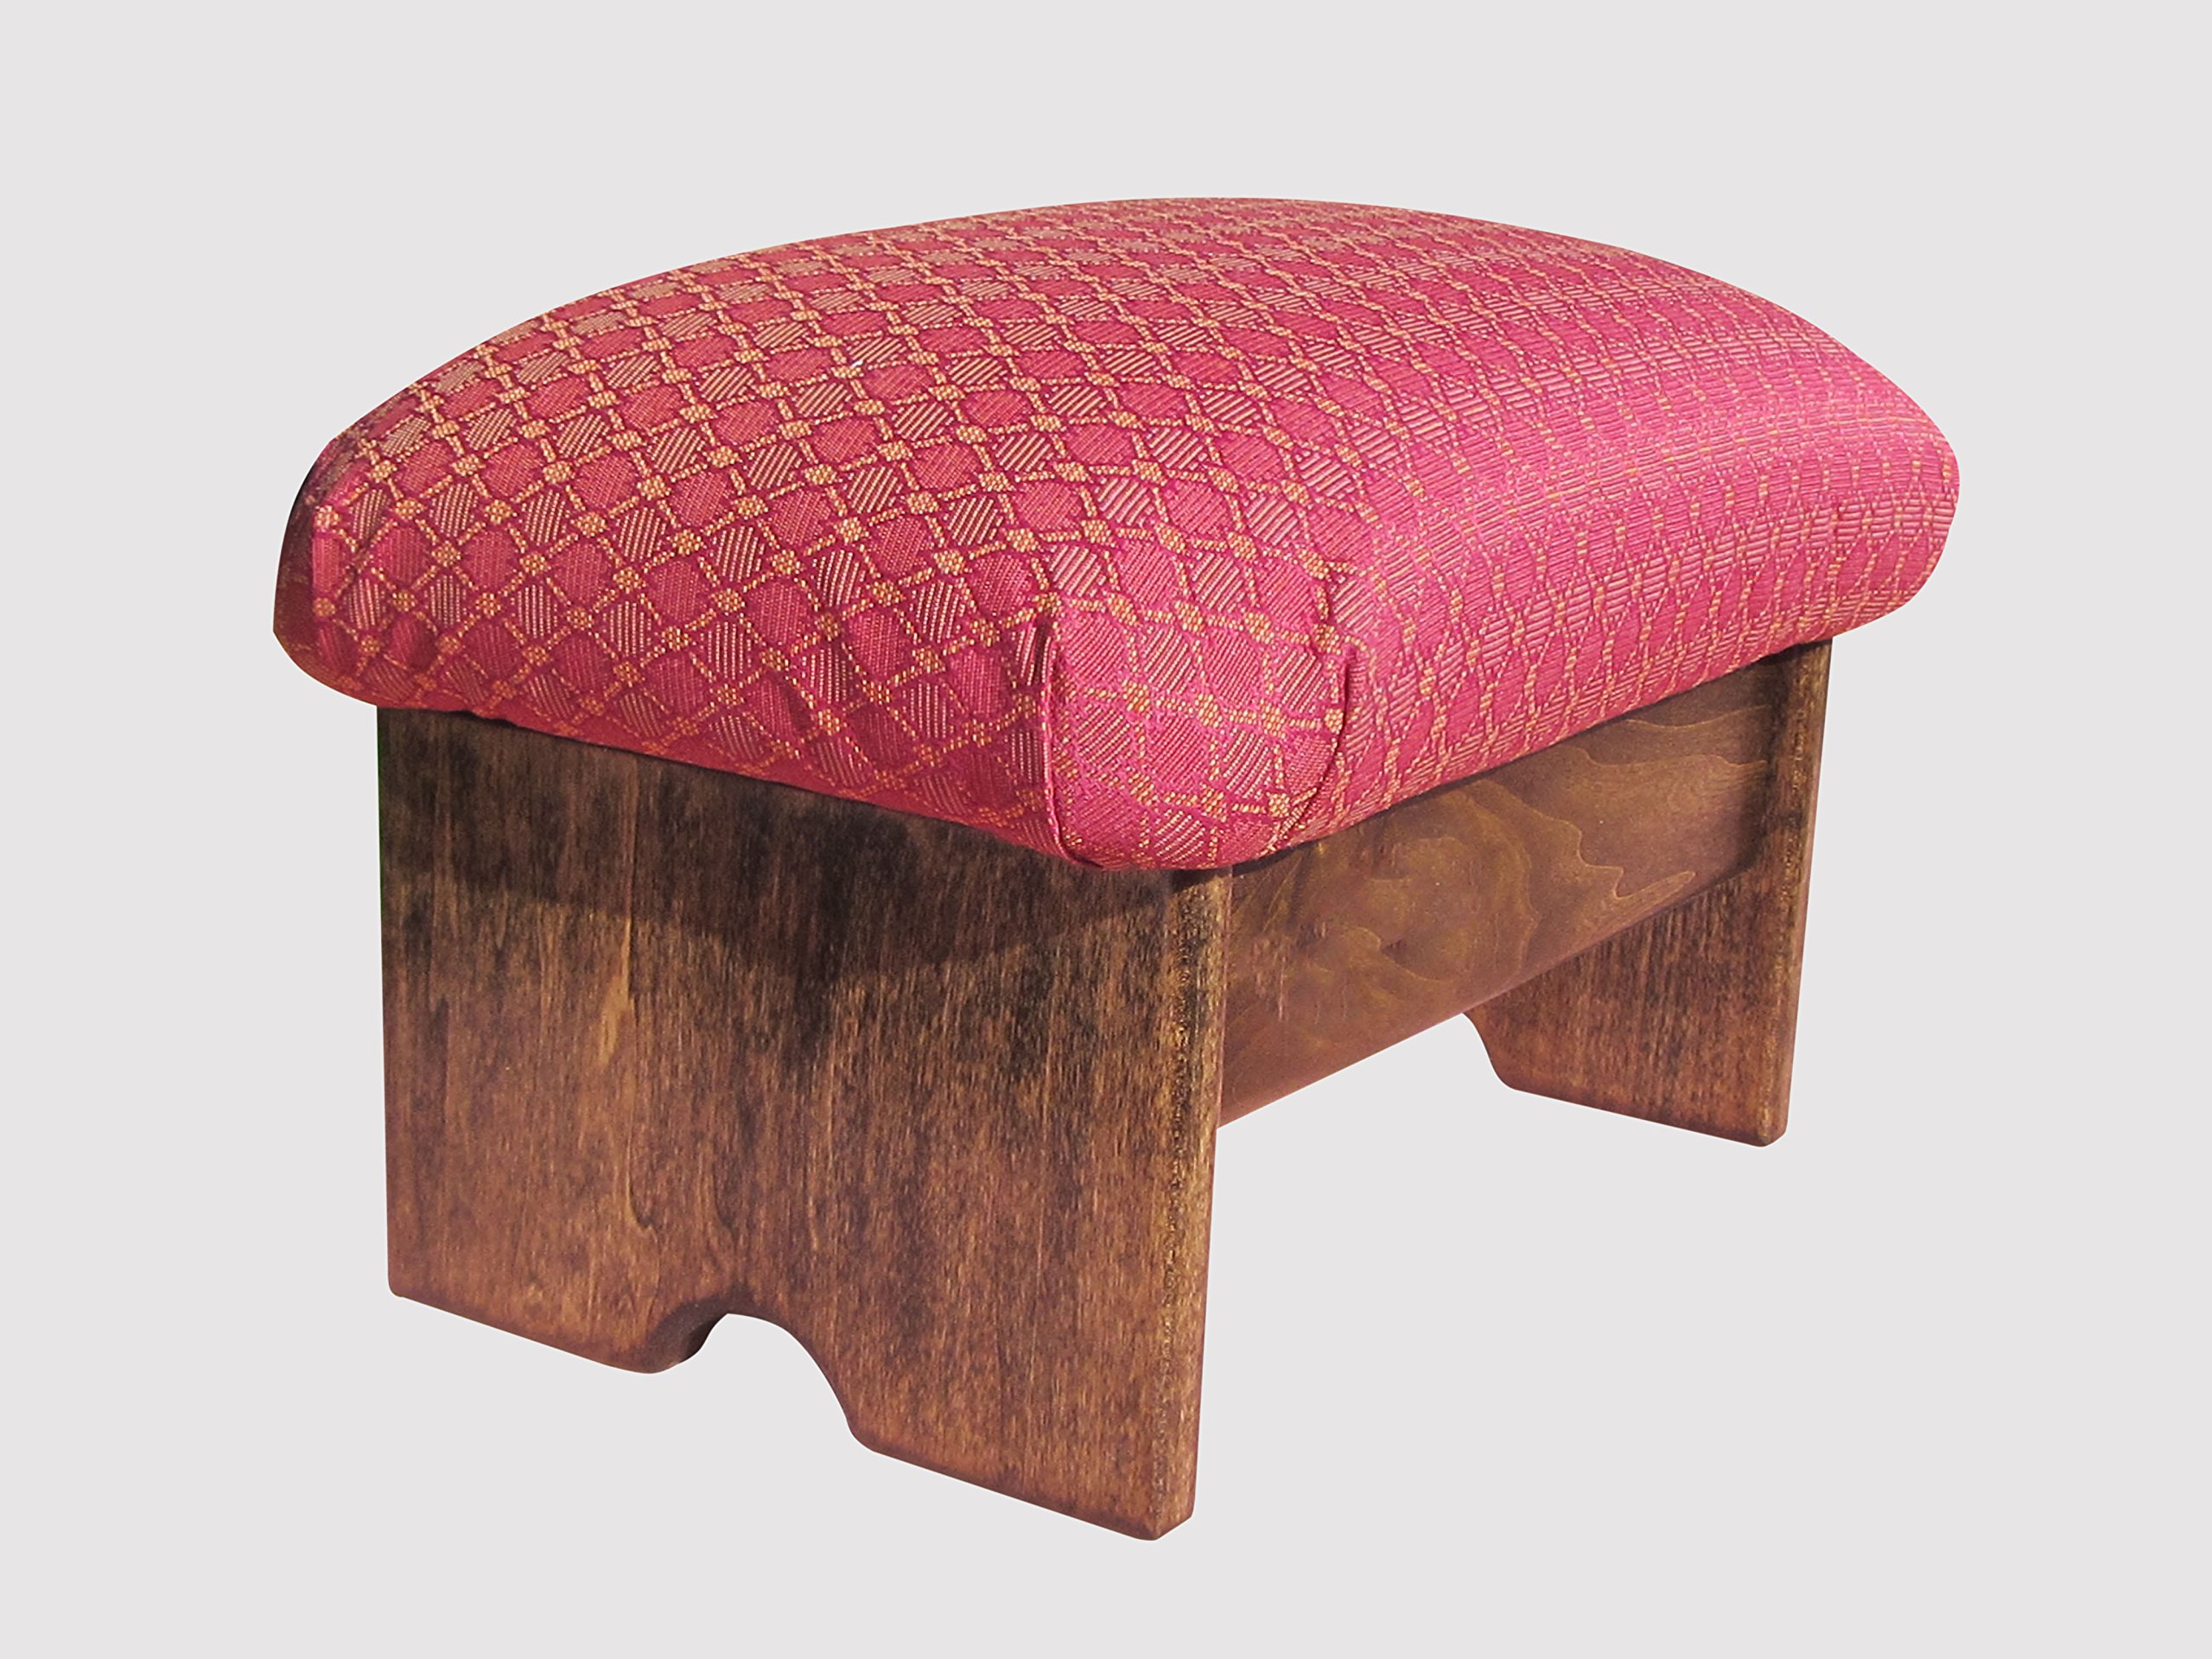 Padded Foot Stool, Ruby Red (Made in the USA) (Walnut Stain - 9'' Tall)